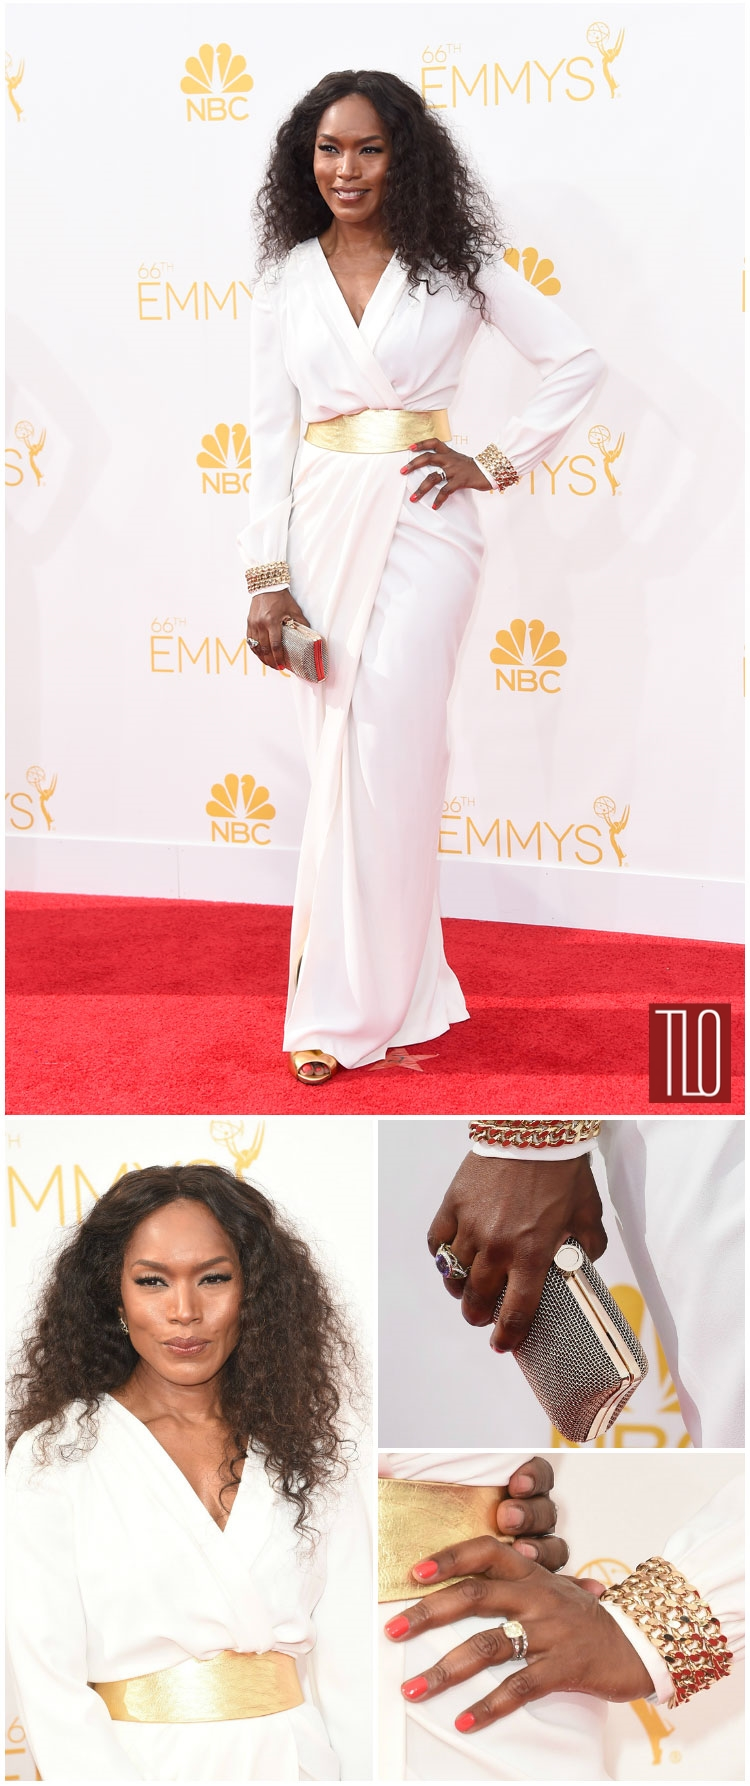 Angela-Bassett-2014-Emmy-Awards-Elisabetta-Franchi-Red-Carpet-Tom-Lorenzo-Site-TLO (2)